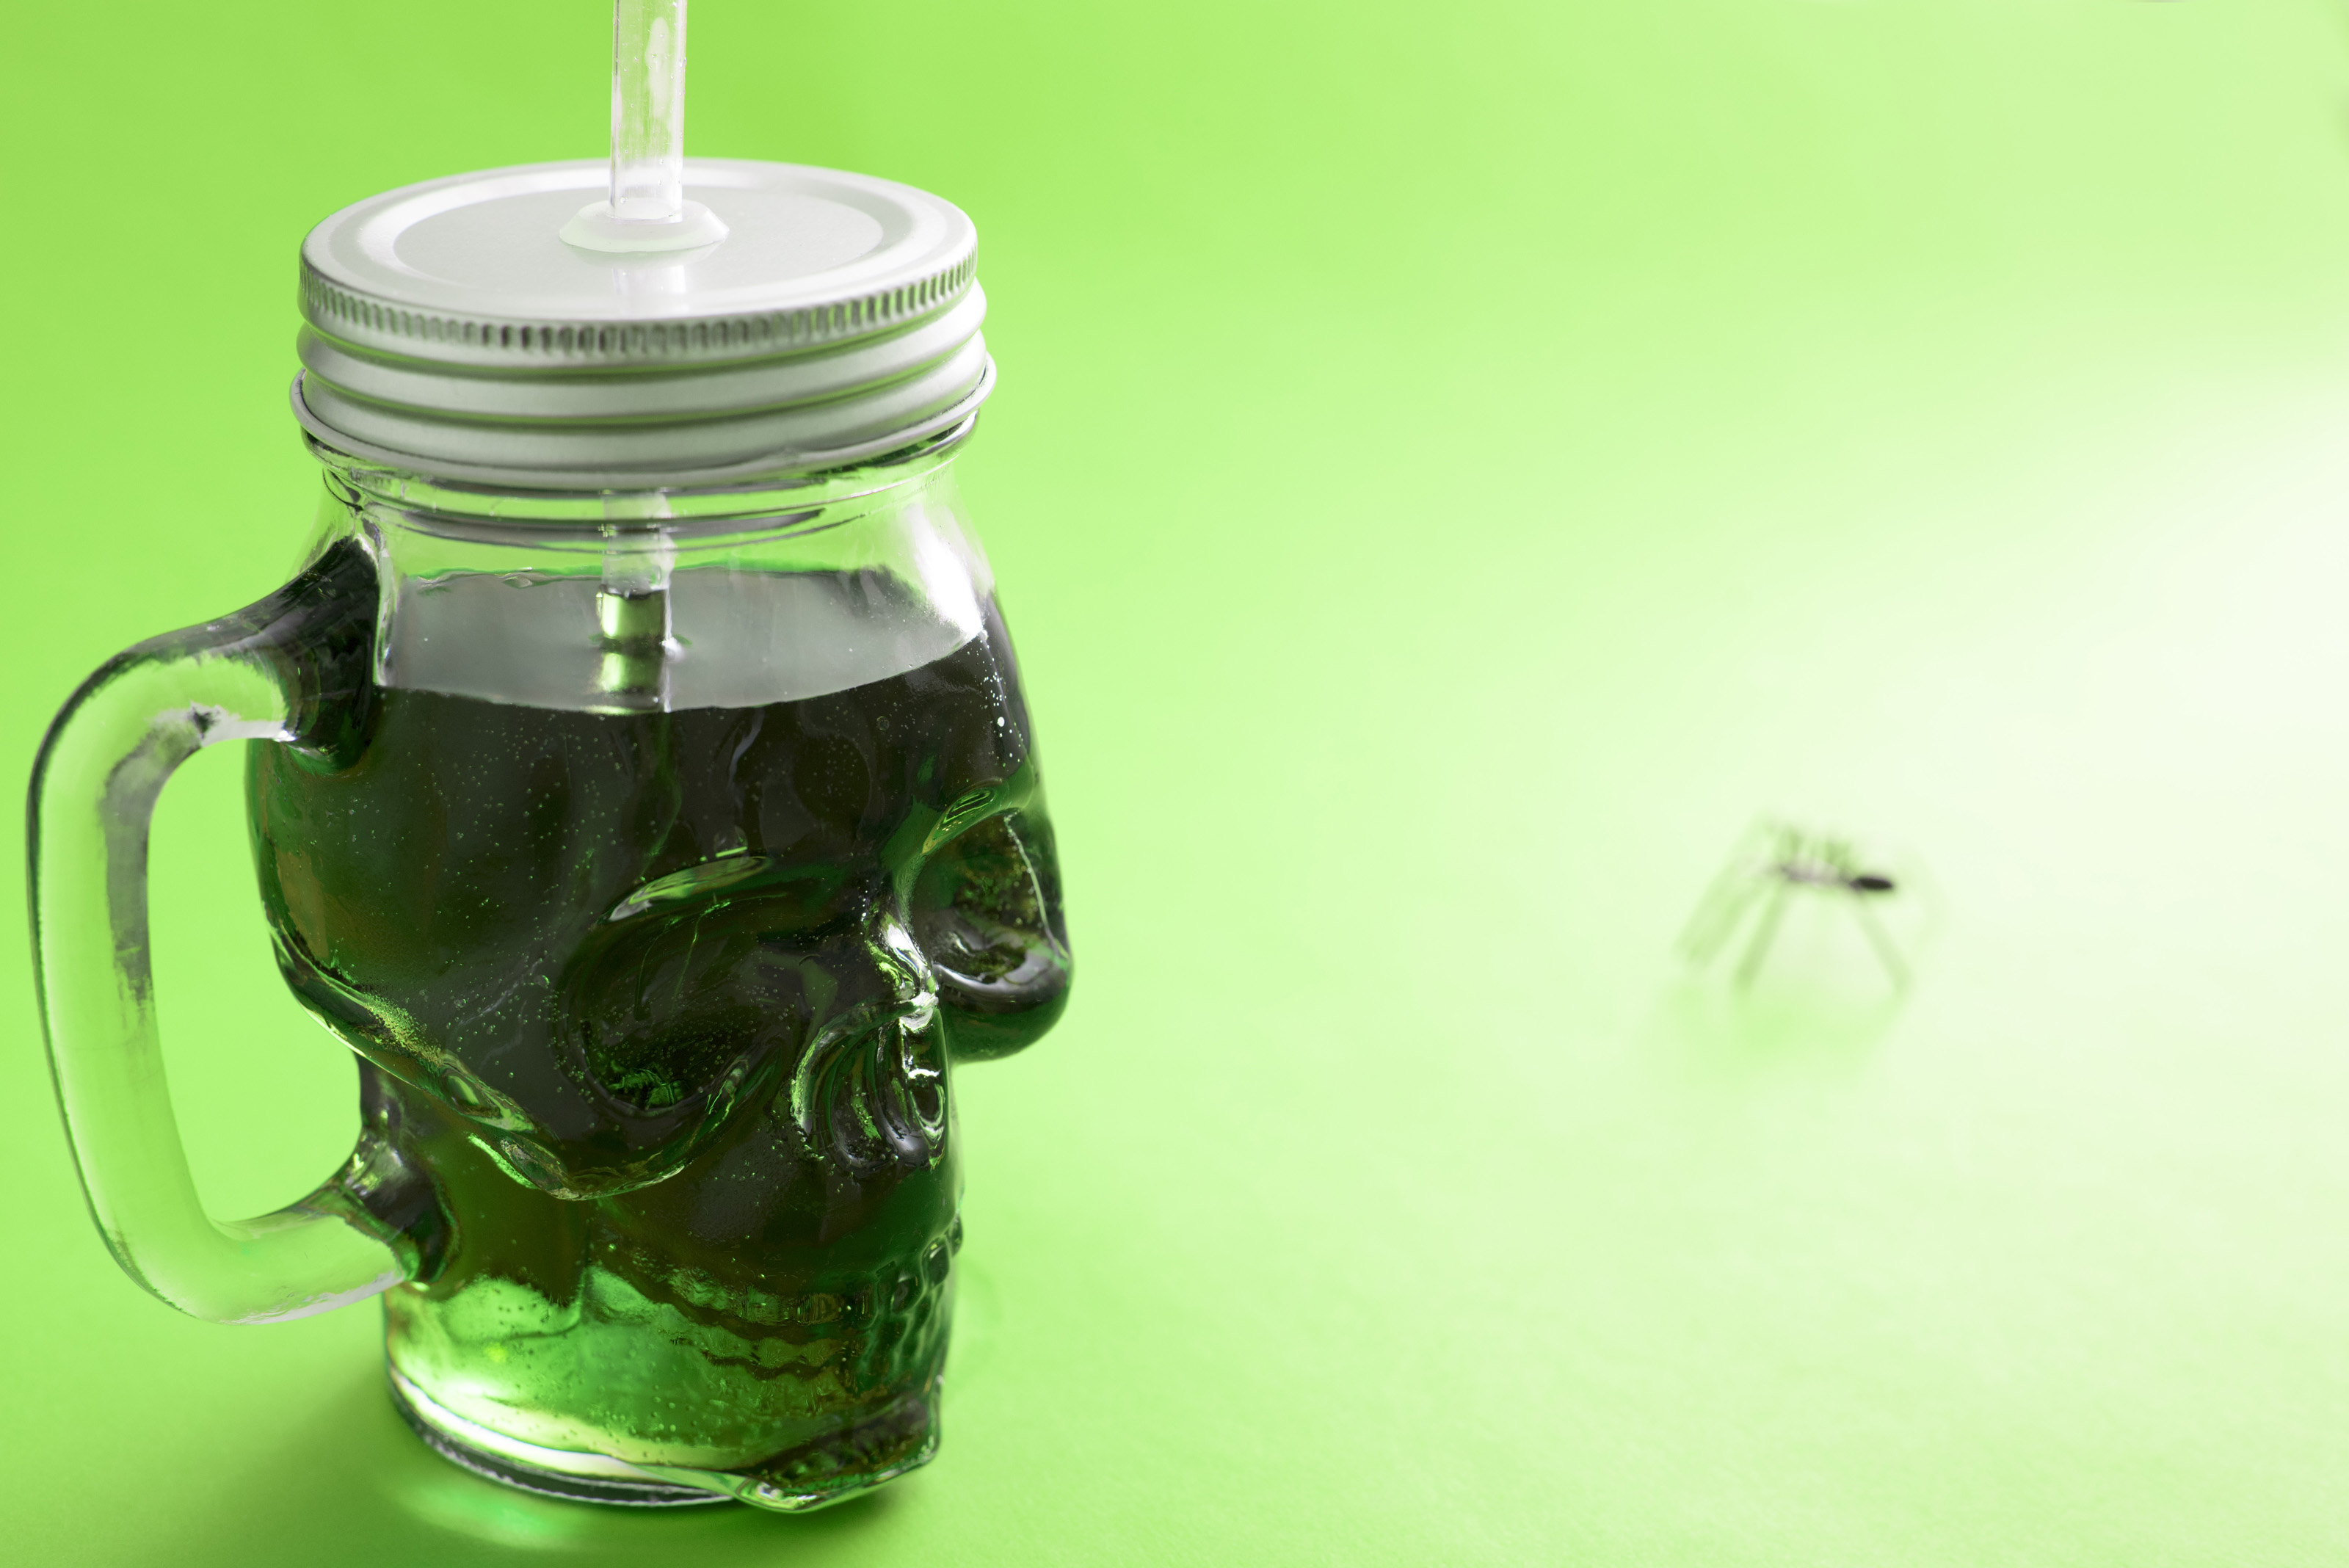 Green Halloween drink in a skull shaped glass mason jar with lid and straw over a graduated background with copy space